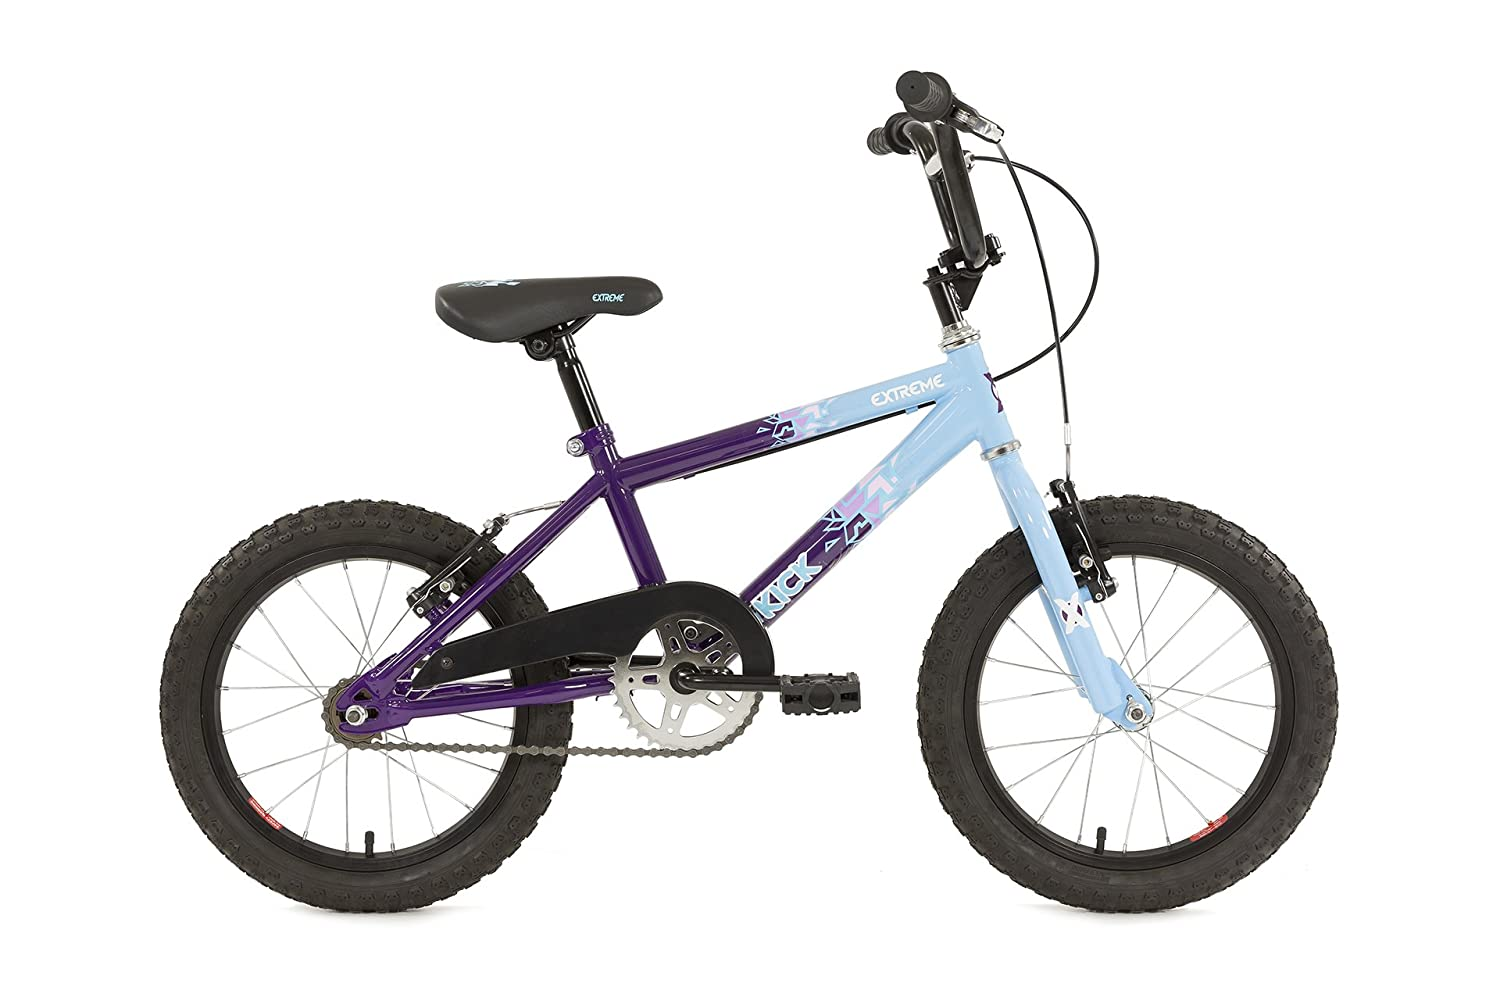 7d5e3b23b4e Extreme Kids Kick Bmx 16 10 R Bike - Blue And Purple